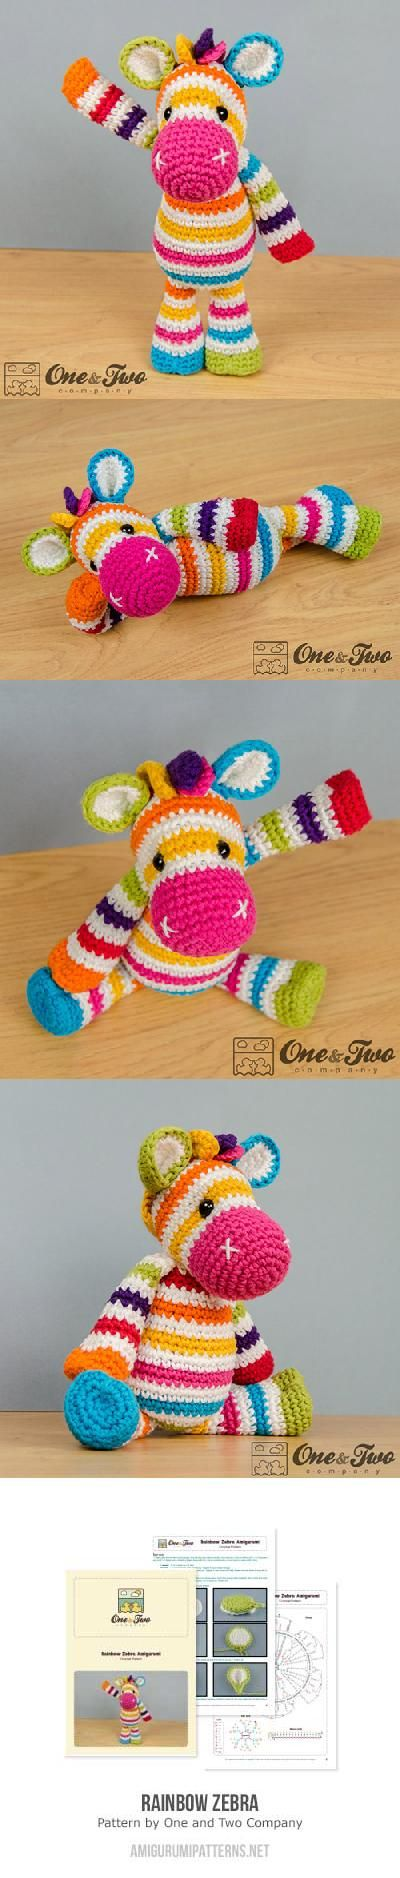 Found at Amigurumipatterns.net ༺✿ƬⱤღ  https://www.pinterest.com/teretegui/✿༻